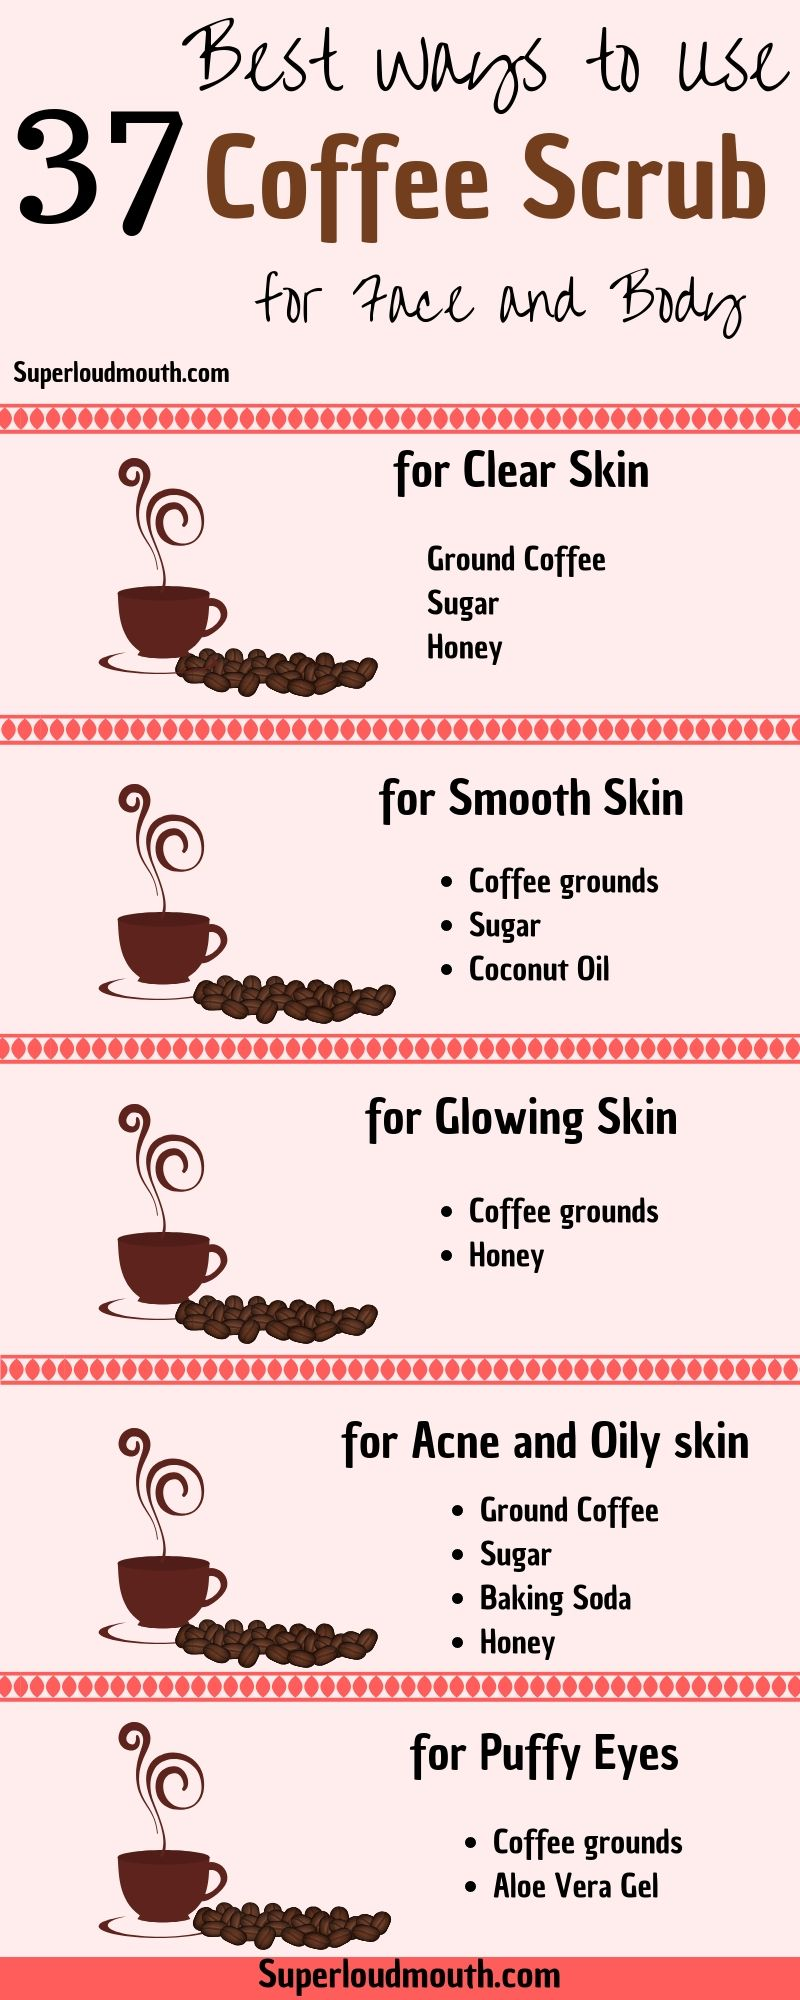 37 Diy Coffee Scrub Recipes for a Beautiful Face, Body and Cellulite is part of Coffee scrub diy - Coffee scrub has many benefits from exfoliating the impurities from the skin to keeping it soft, rejuvenated, young looking, and glowing  Do try these coffee scrubs